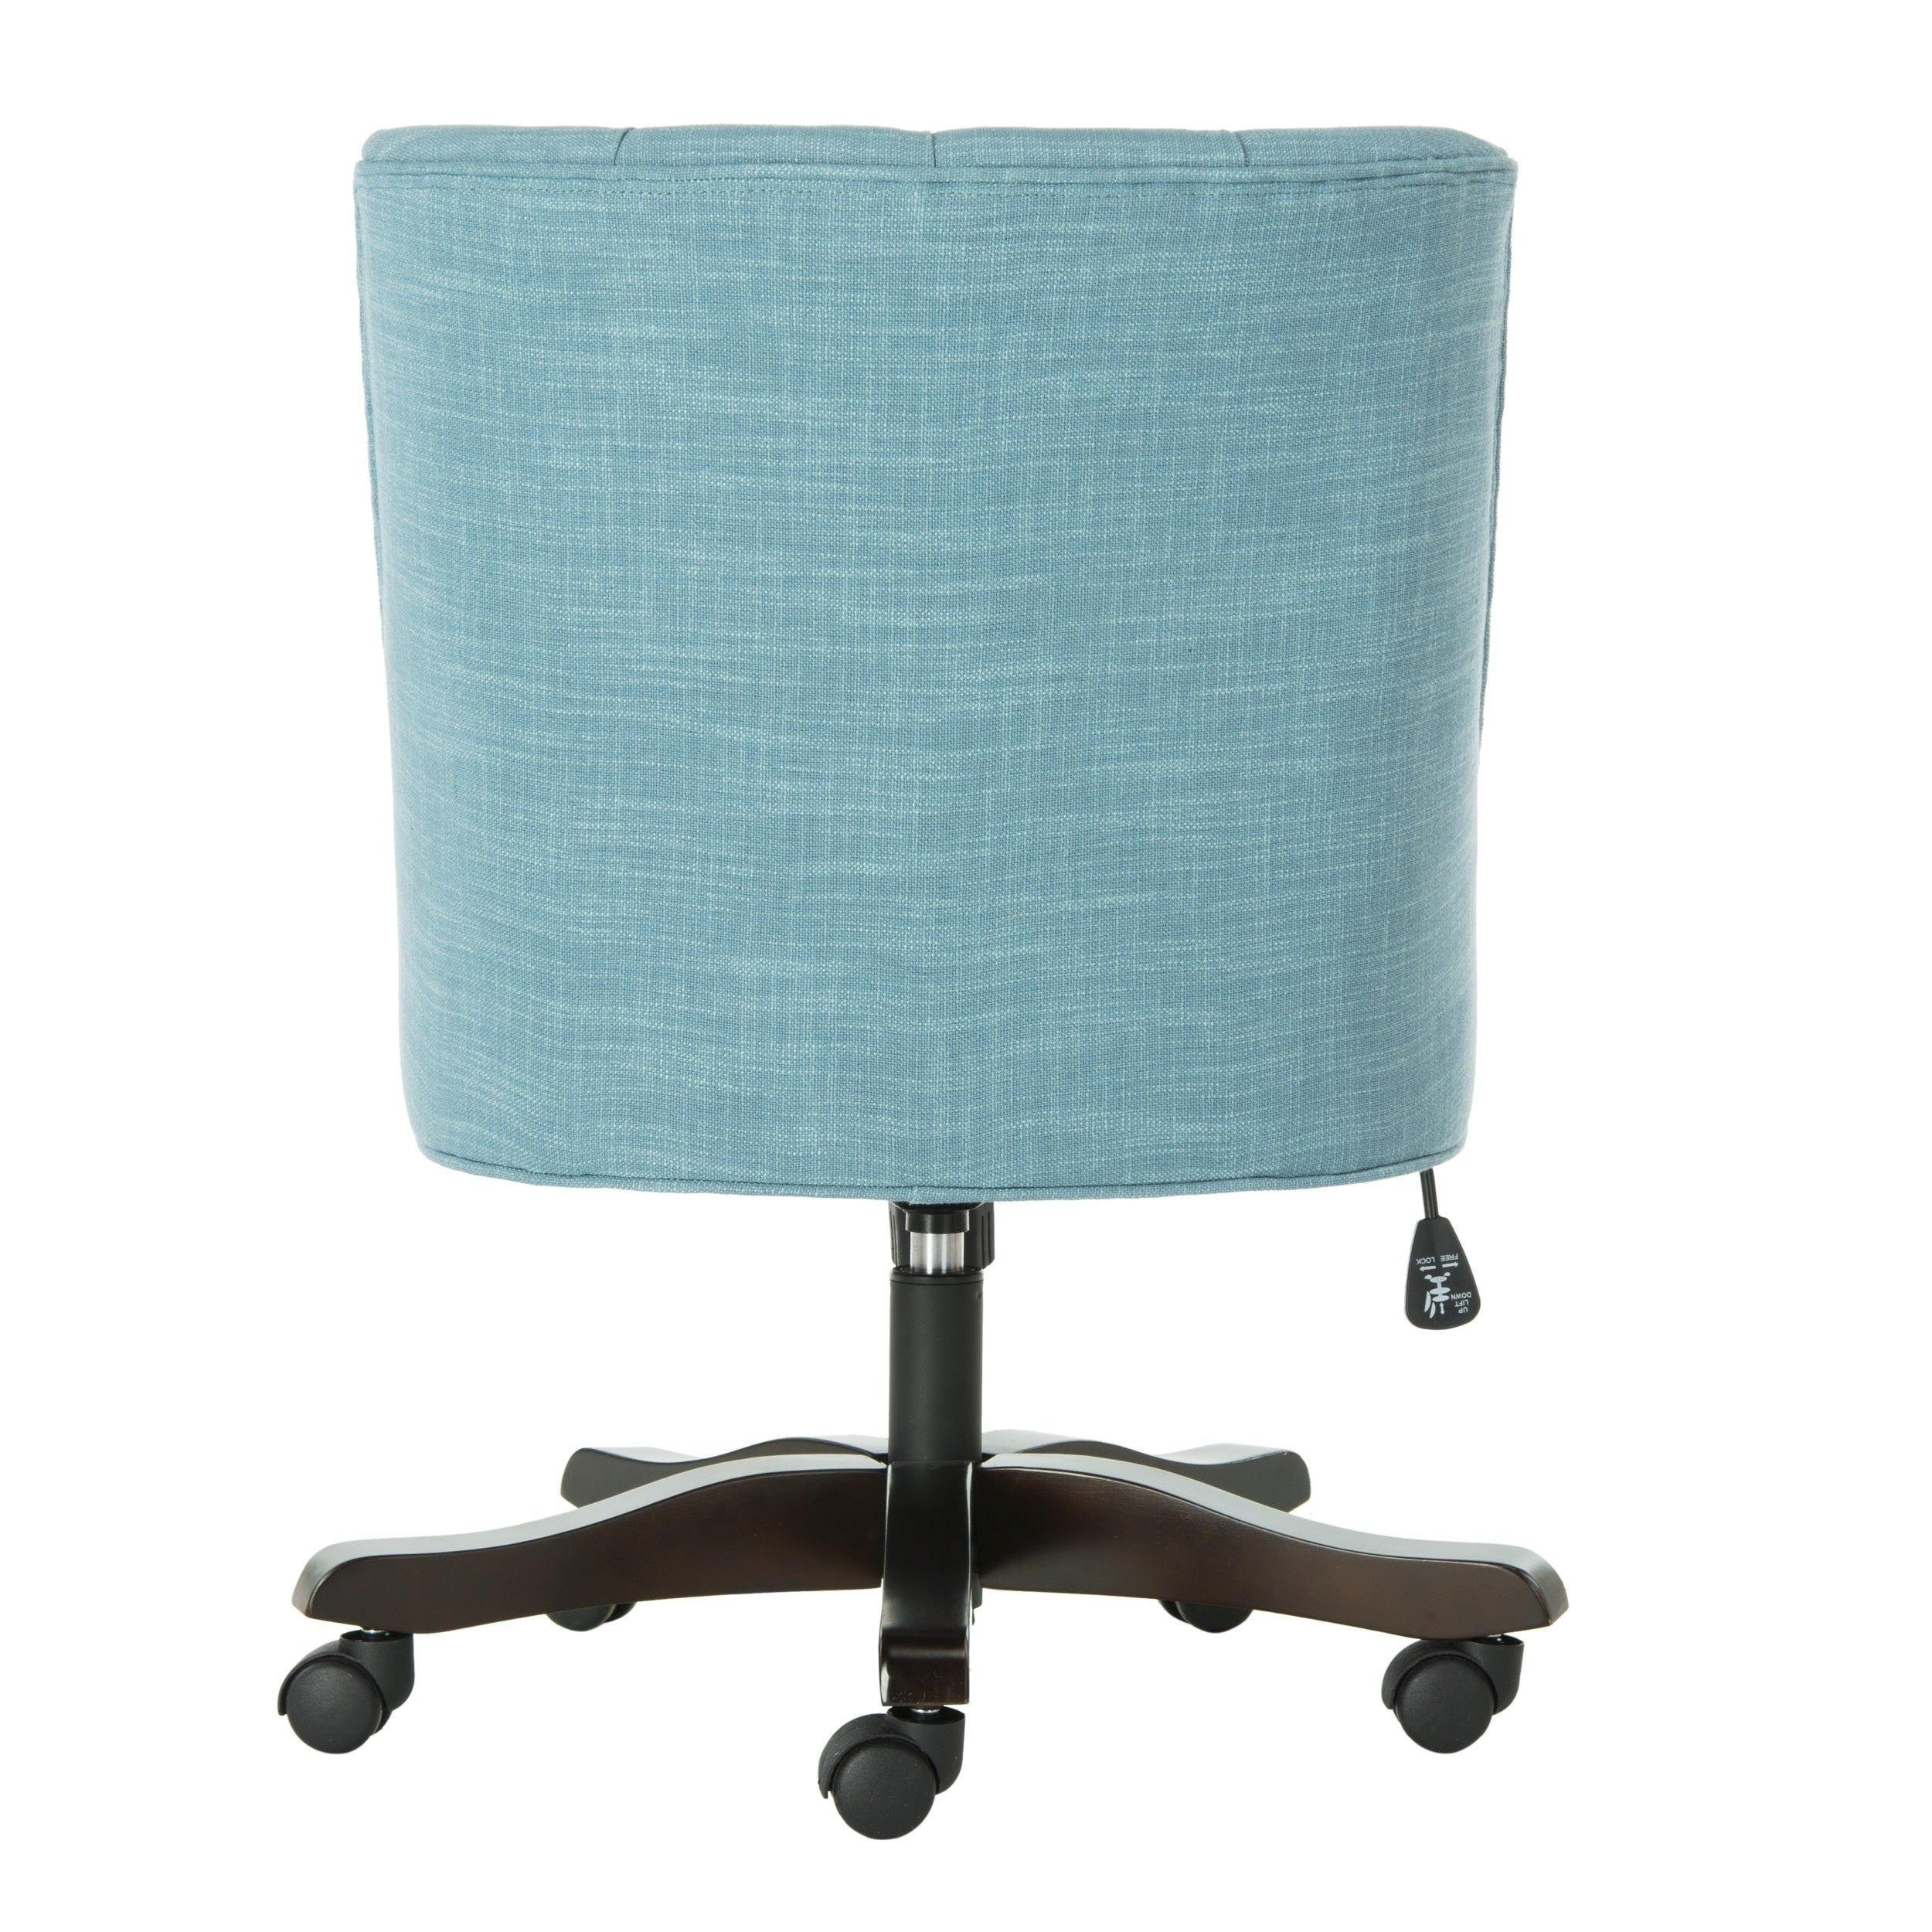 desk reviews armless wayfair chair aqua chairs back furniture star pdx mid lone